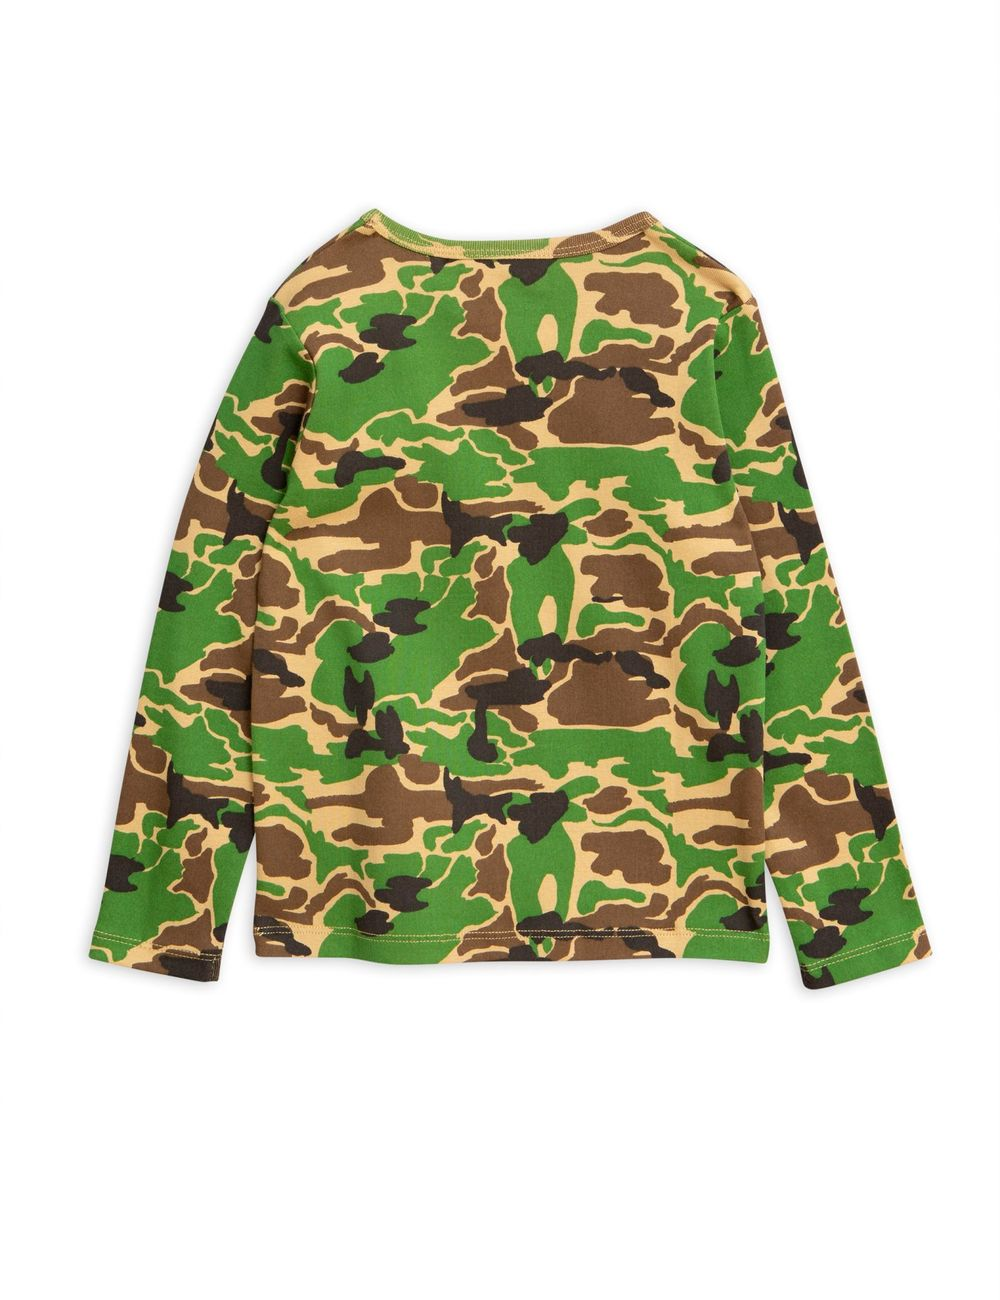 MINI RODINI CAMO LS TEE, GREEN